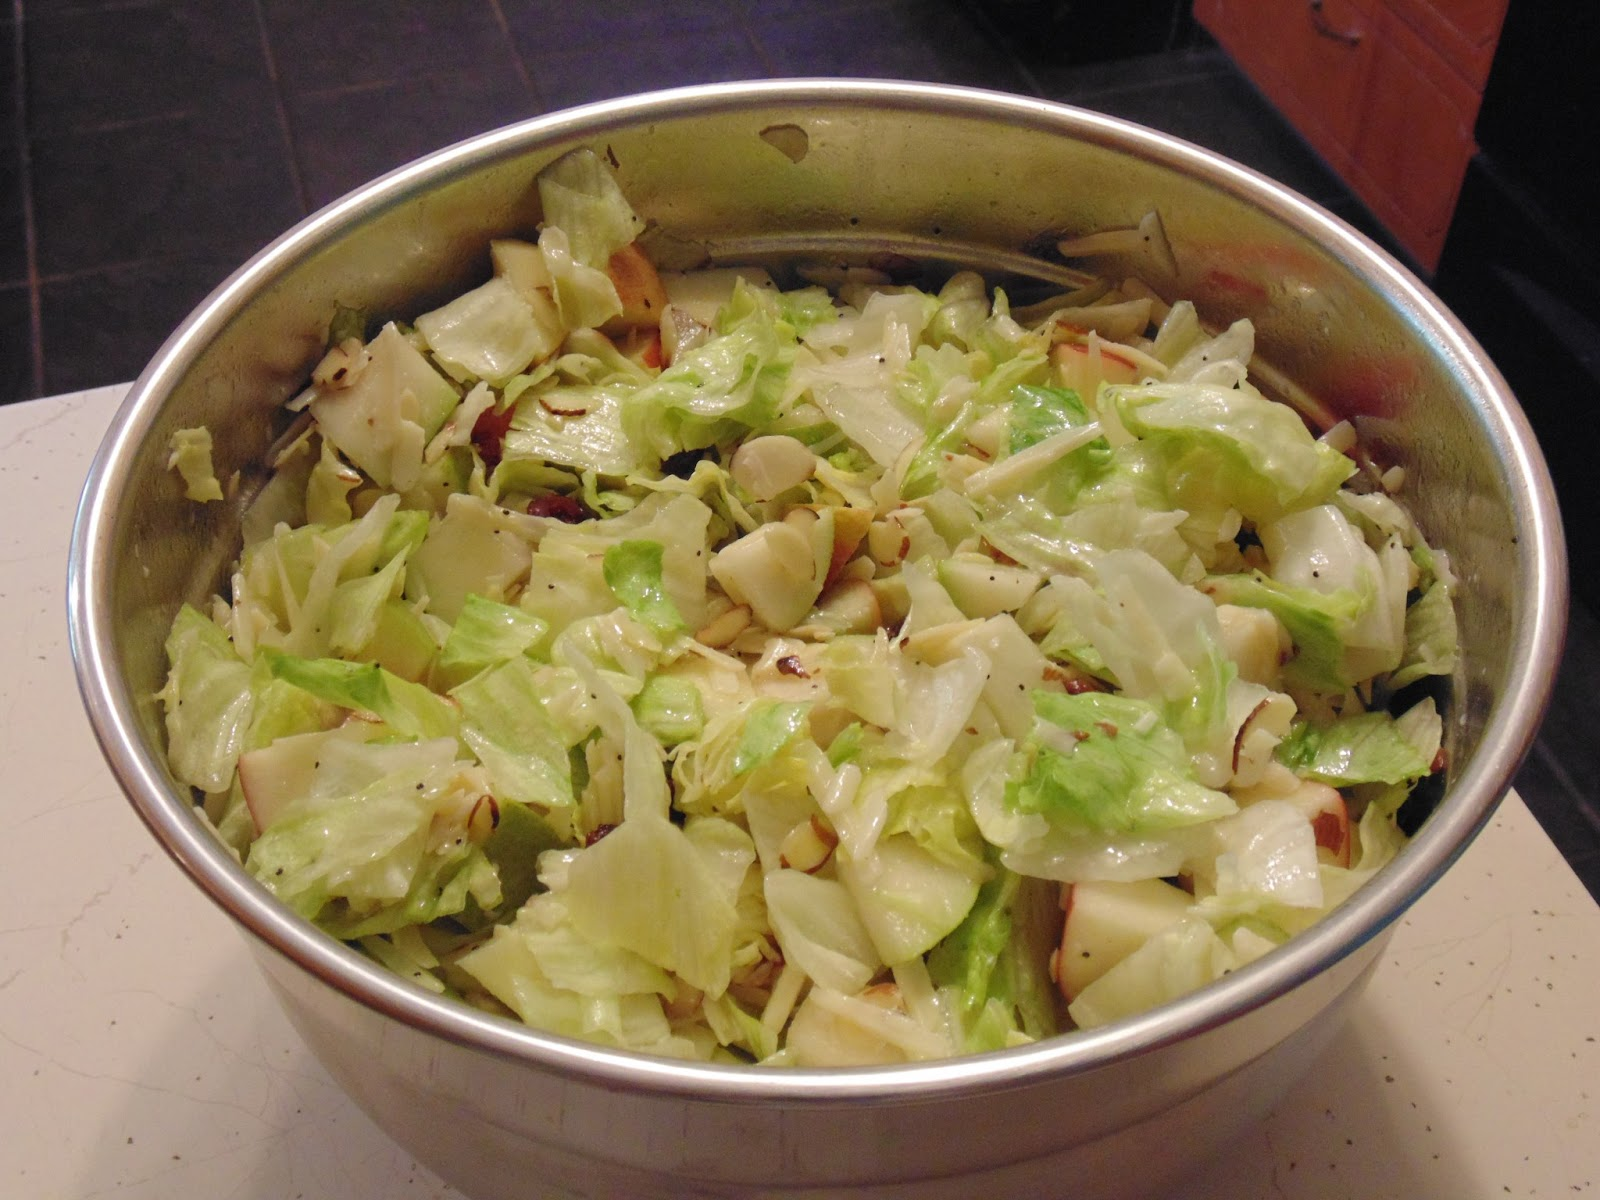 Apple and Pear Salad (Just in time for Summer)